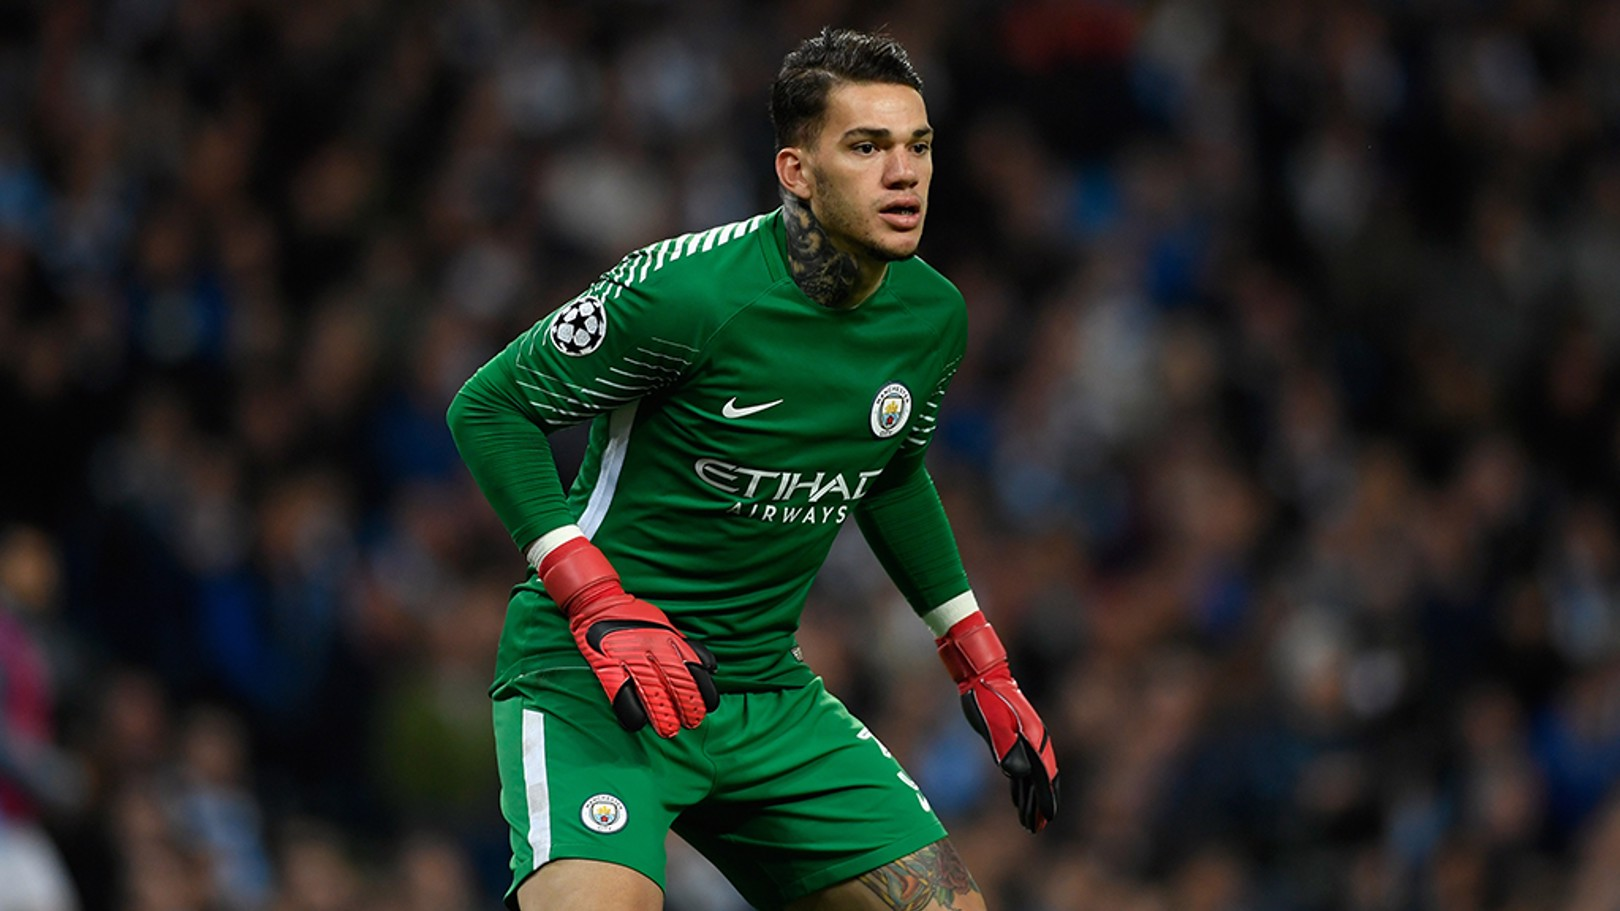 TAKING CHARGE: Ederson takes stance for City